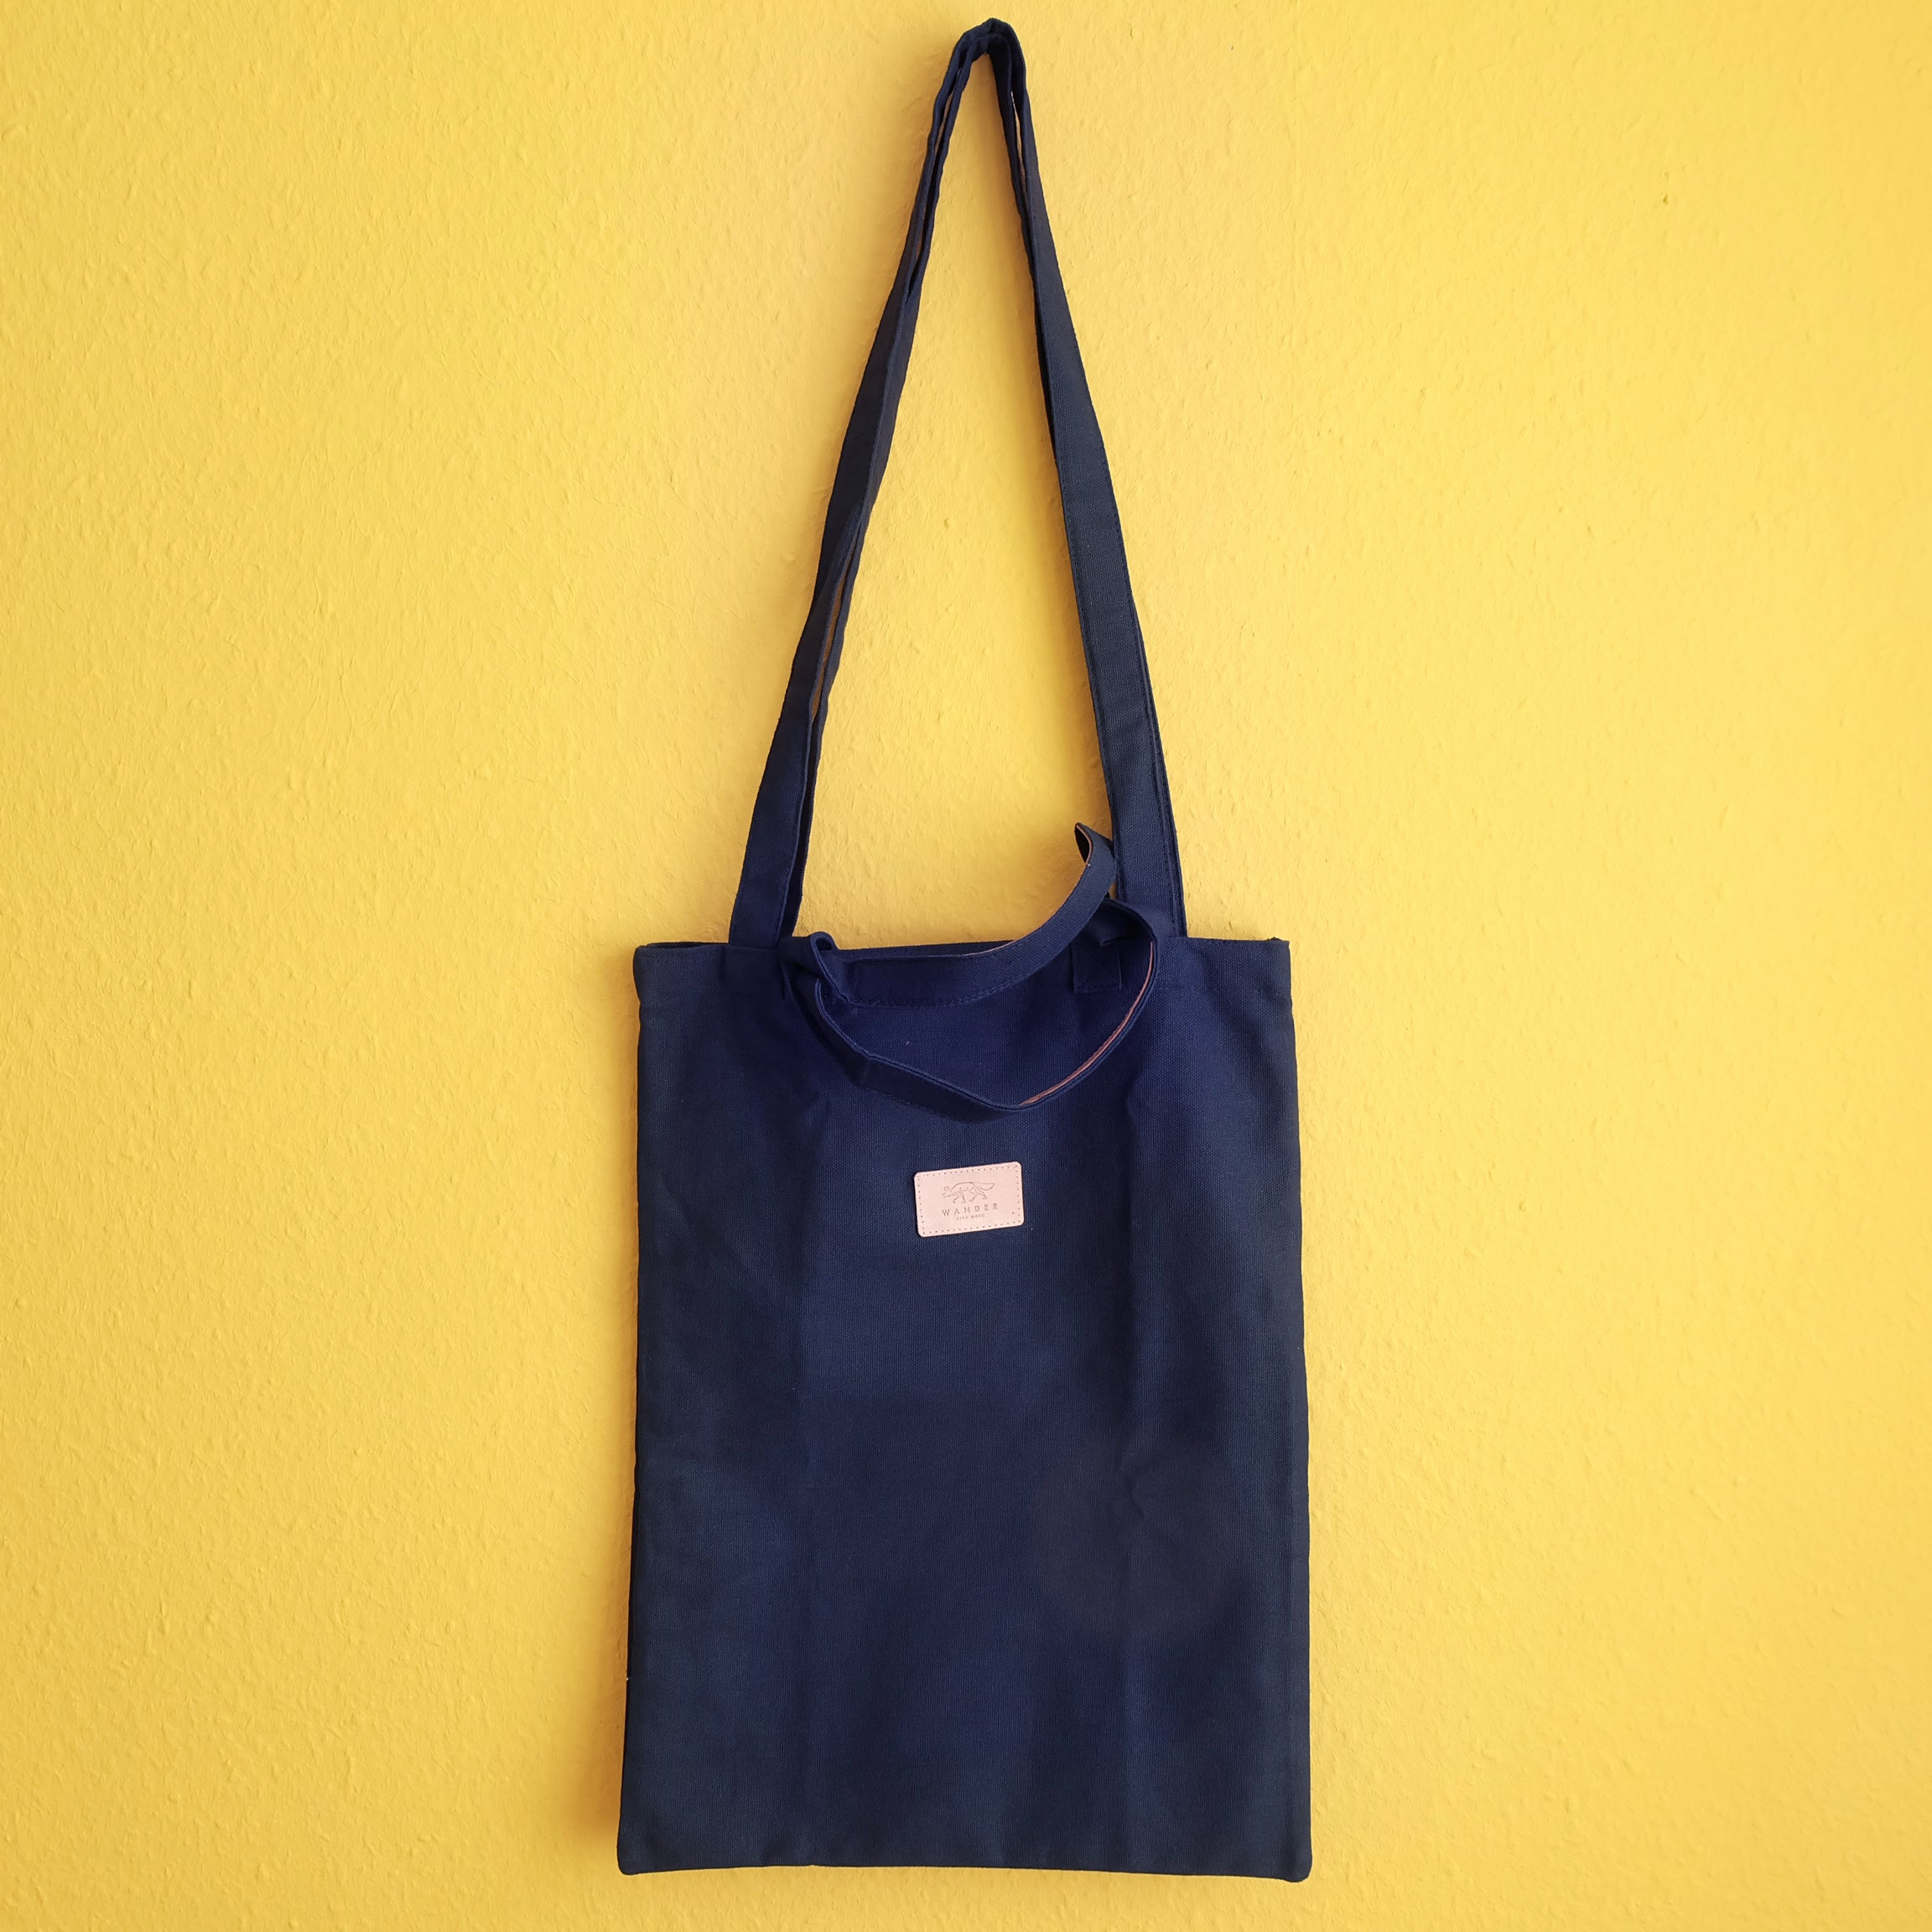 Tote bag with long and short strap - Summer Made